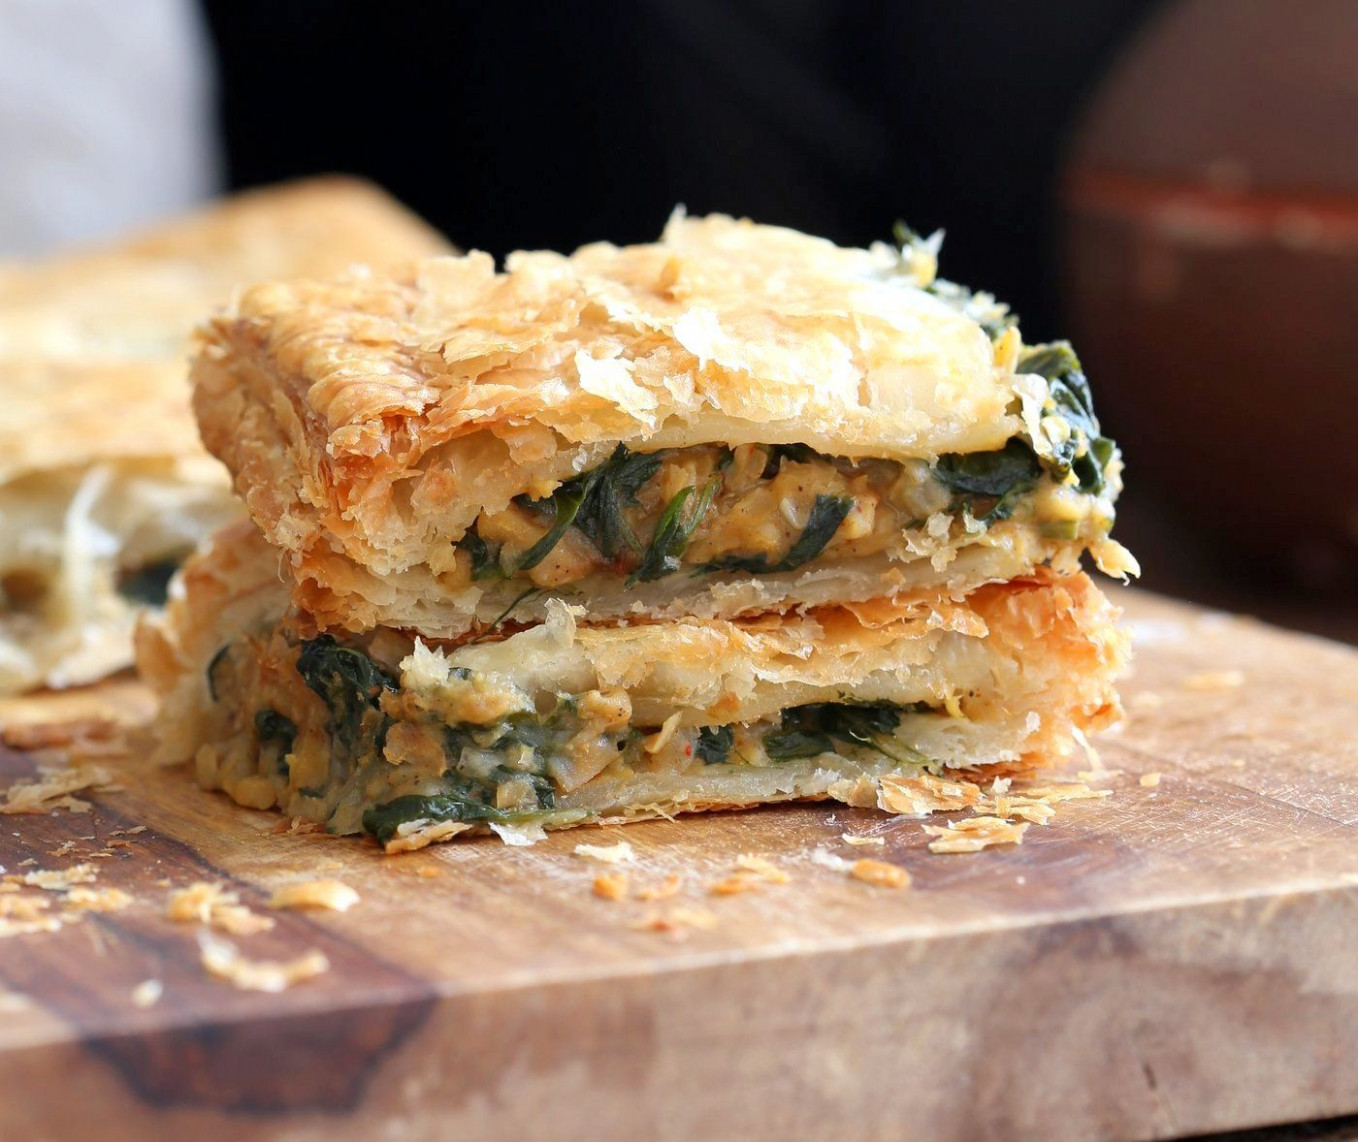 Chickpea Spinach Pie with Berbere Spice - recipes using berbere spice vegetarian